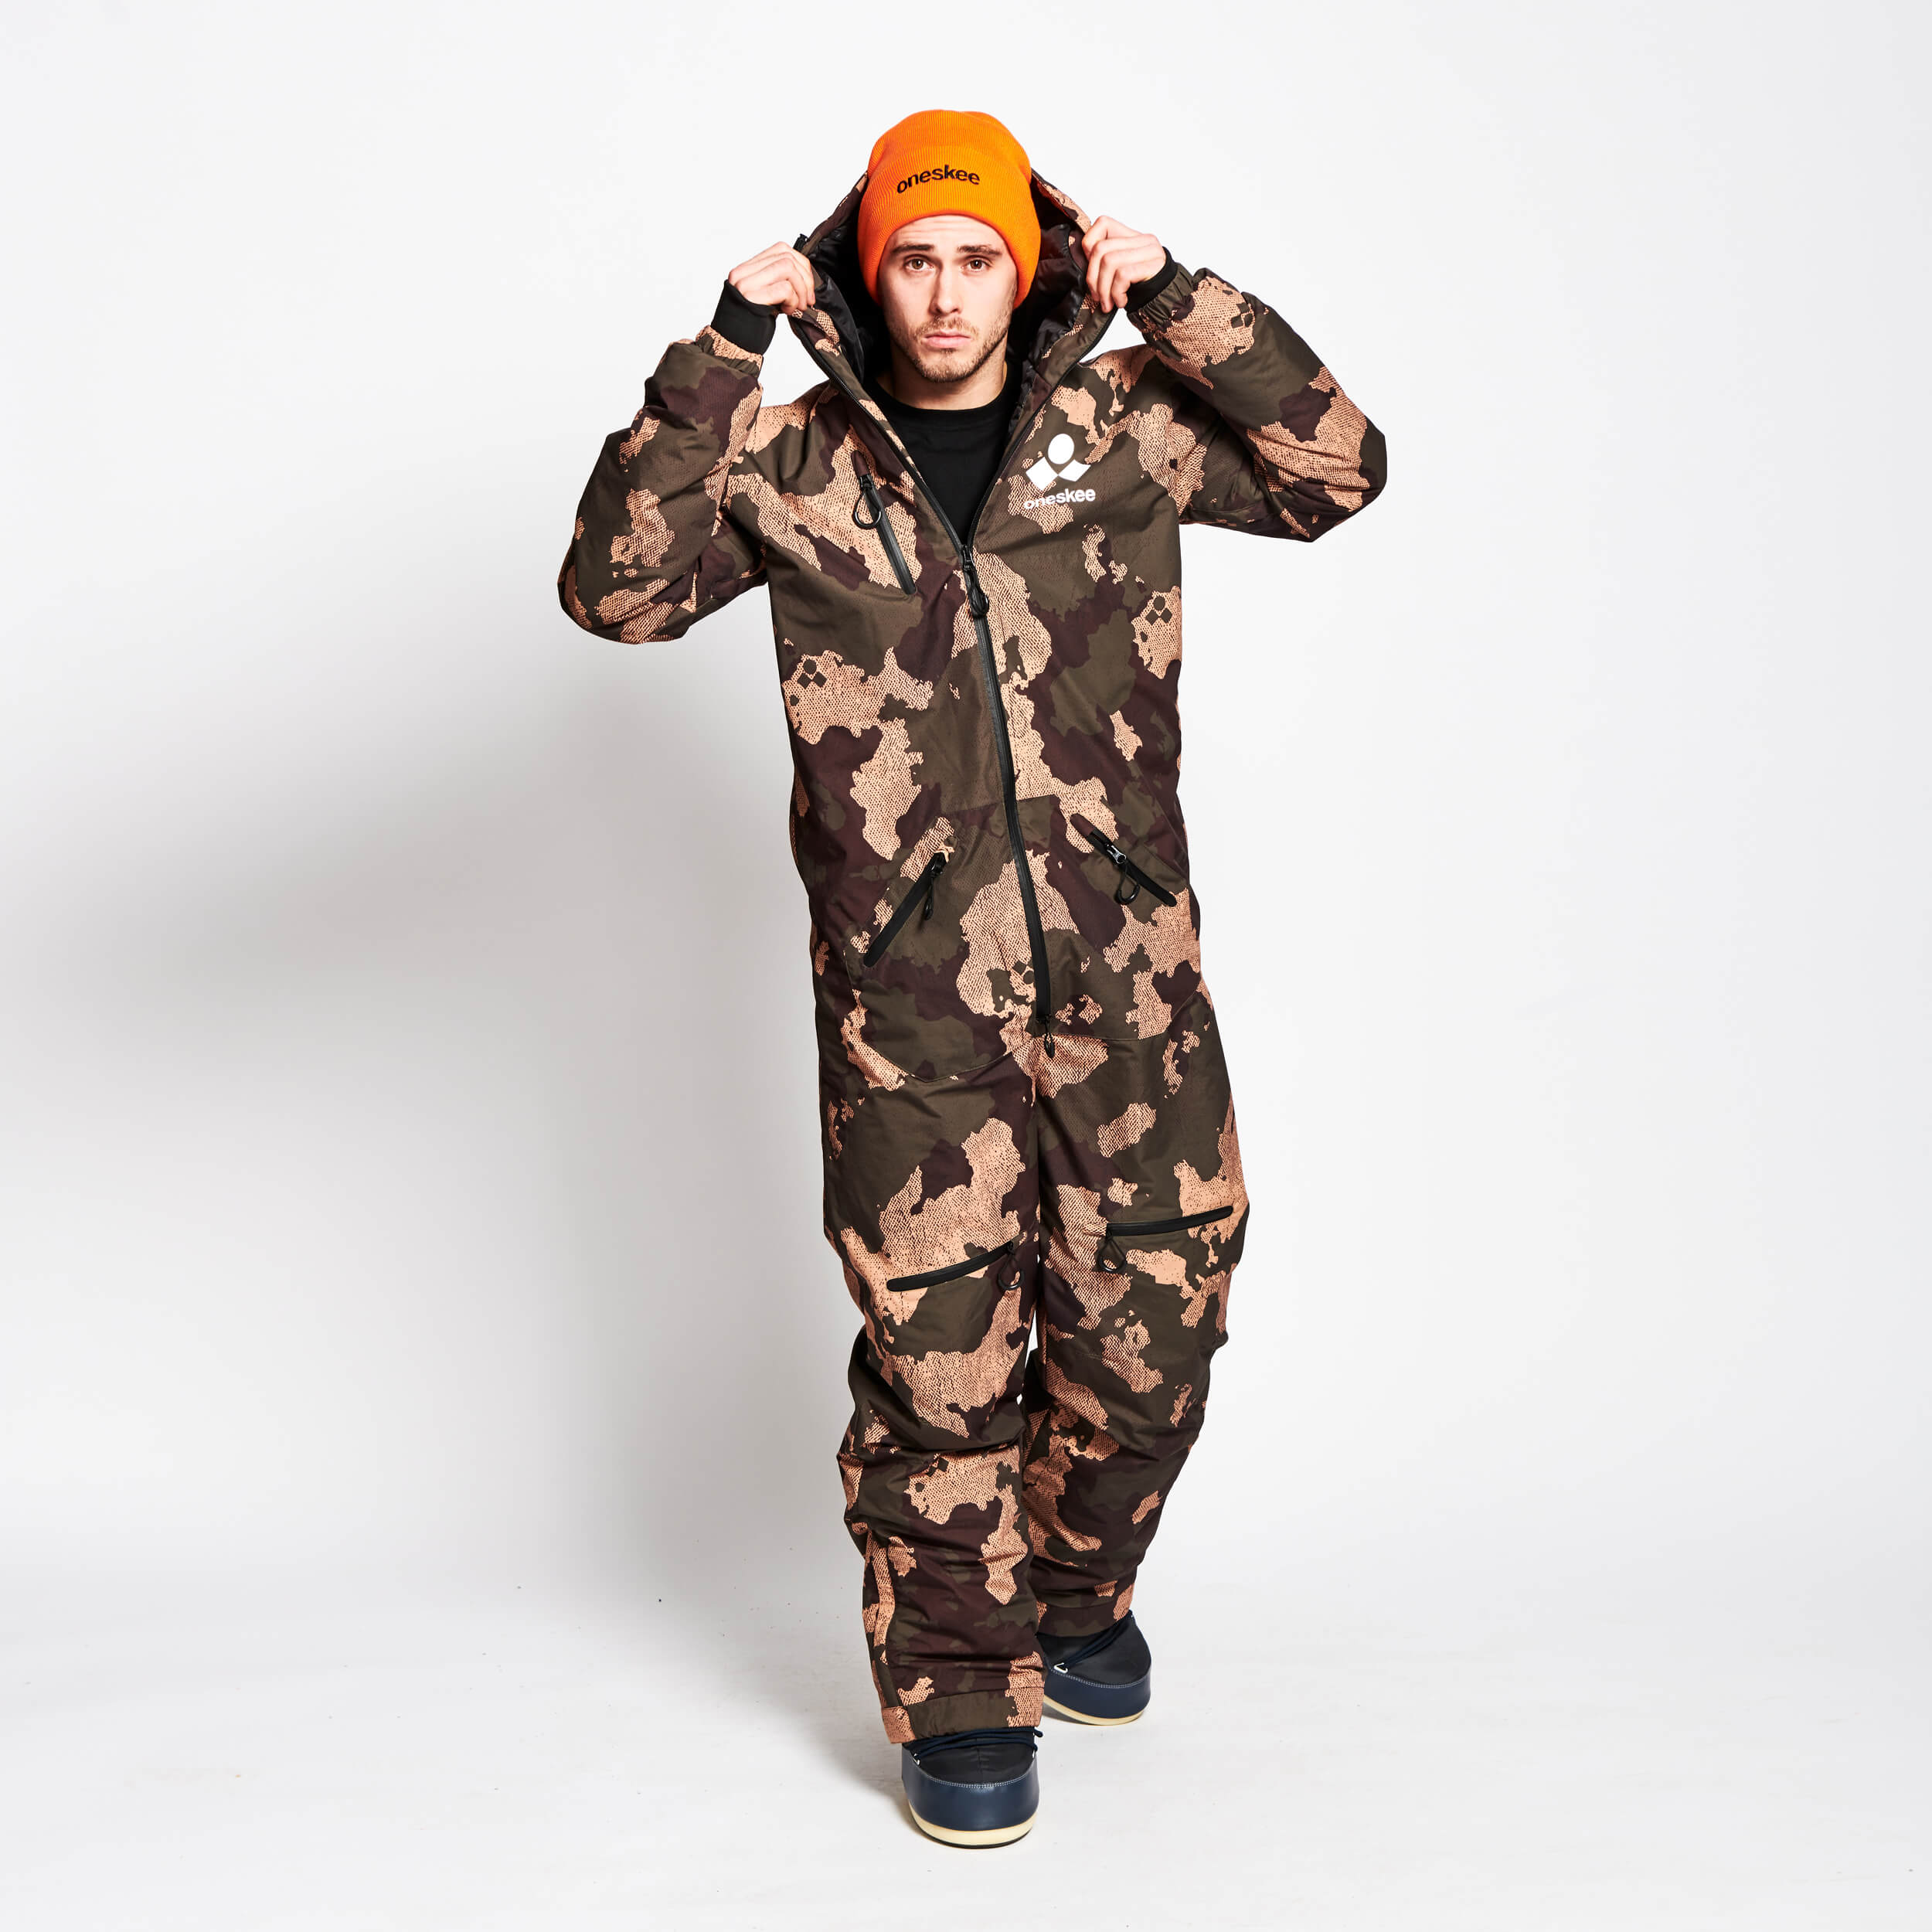 Men's Original Pro Suit - Camo image 10